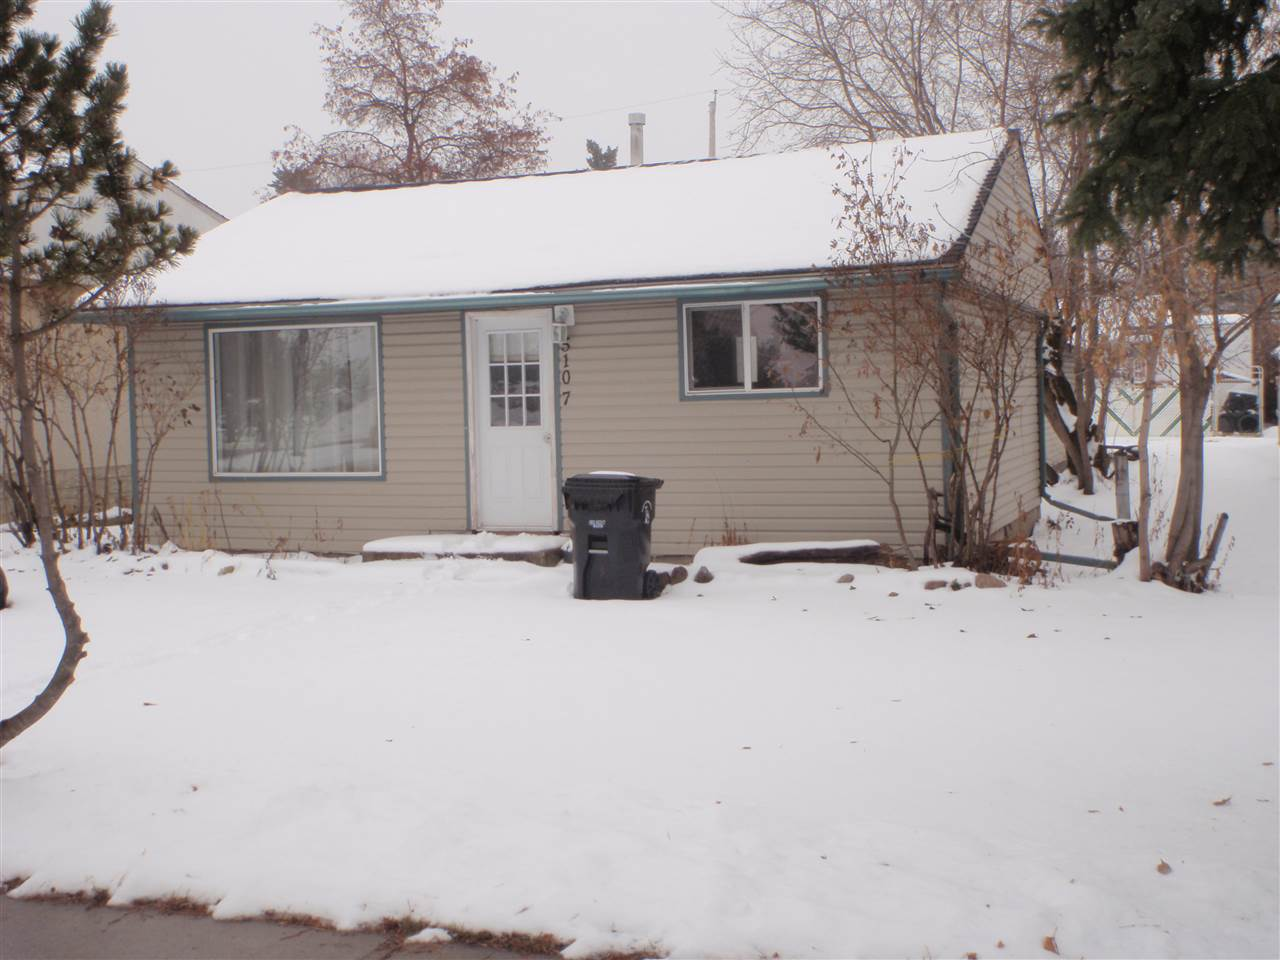 Fantastic 690 sqft 2 bedroom starter/rental property.  Nicely updated with new carpet, vinyl plank flooring, vinyl siding, new moldings & baseboards as well as paint. Current rent is $825.00 / month. The single garage is accessible from the back alley.